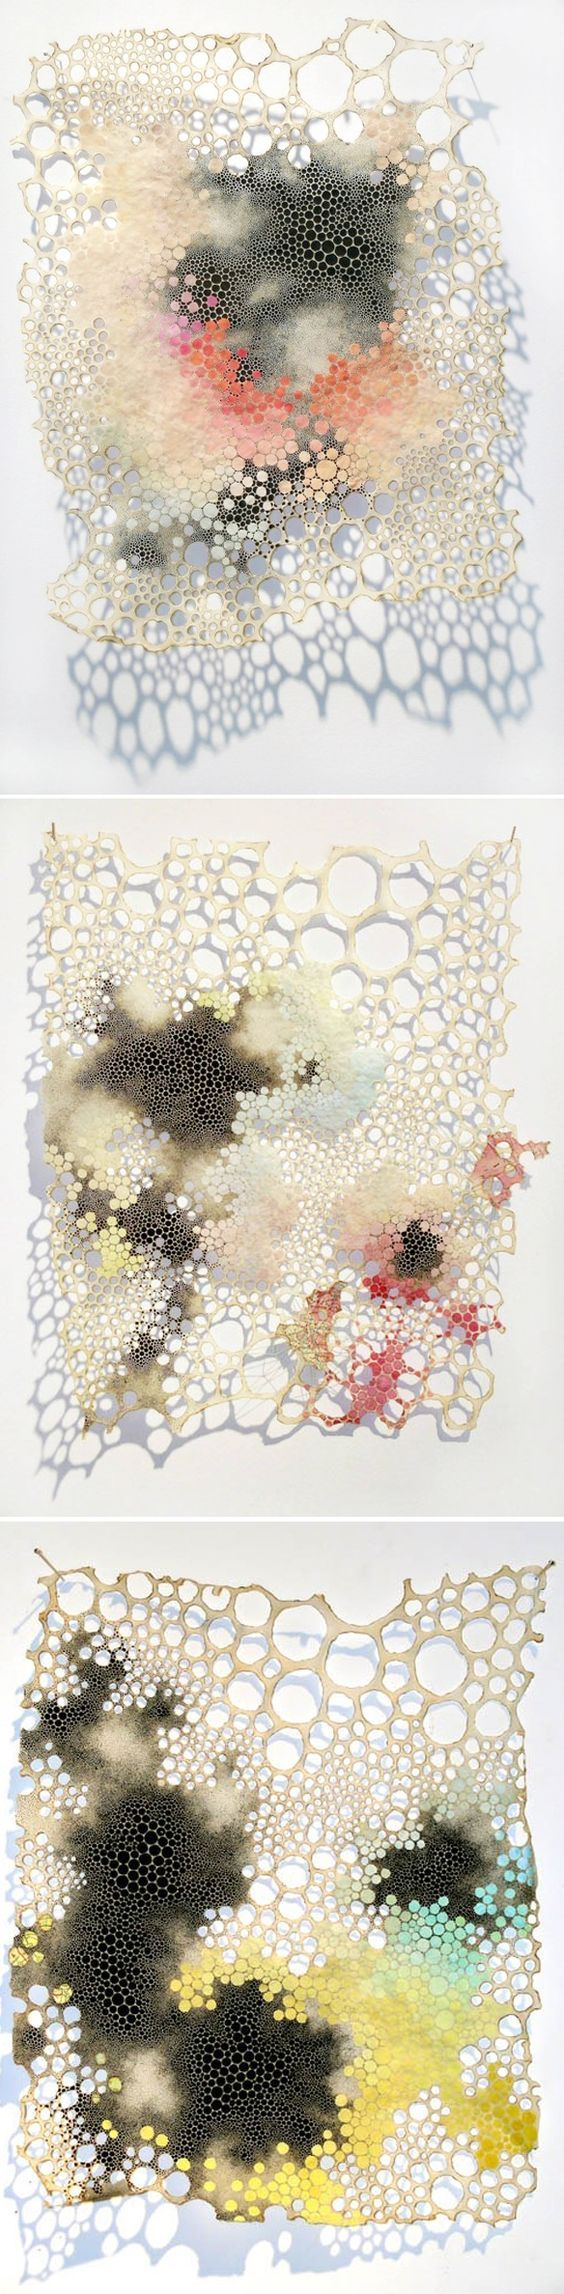 These pieces were created by Karen Margolis and they interest me because they remind me of something that has come out of the ocean suck as a sea sponge or coral. The holes in paper and the pale colours give that effect.